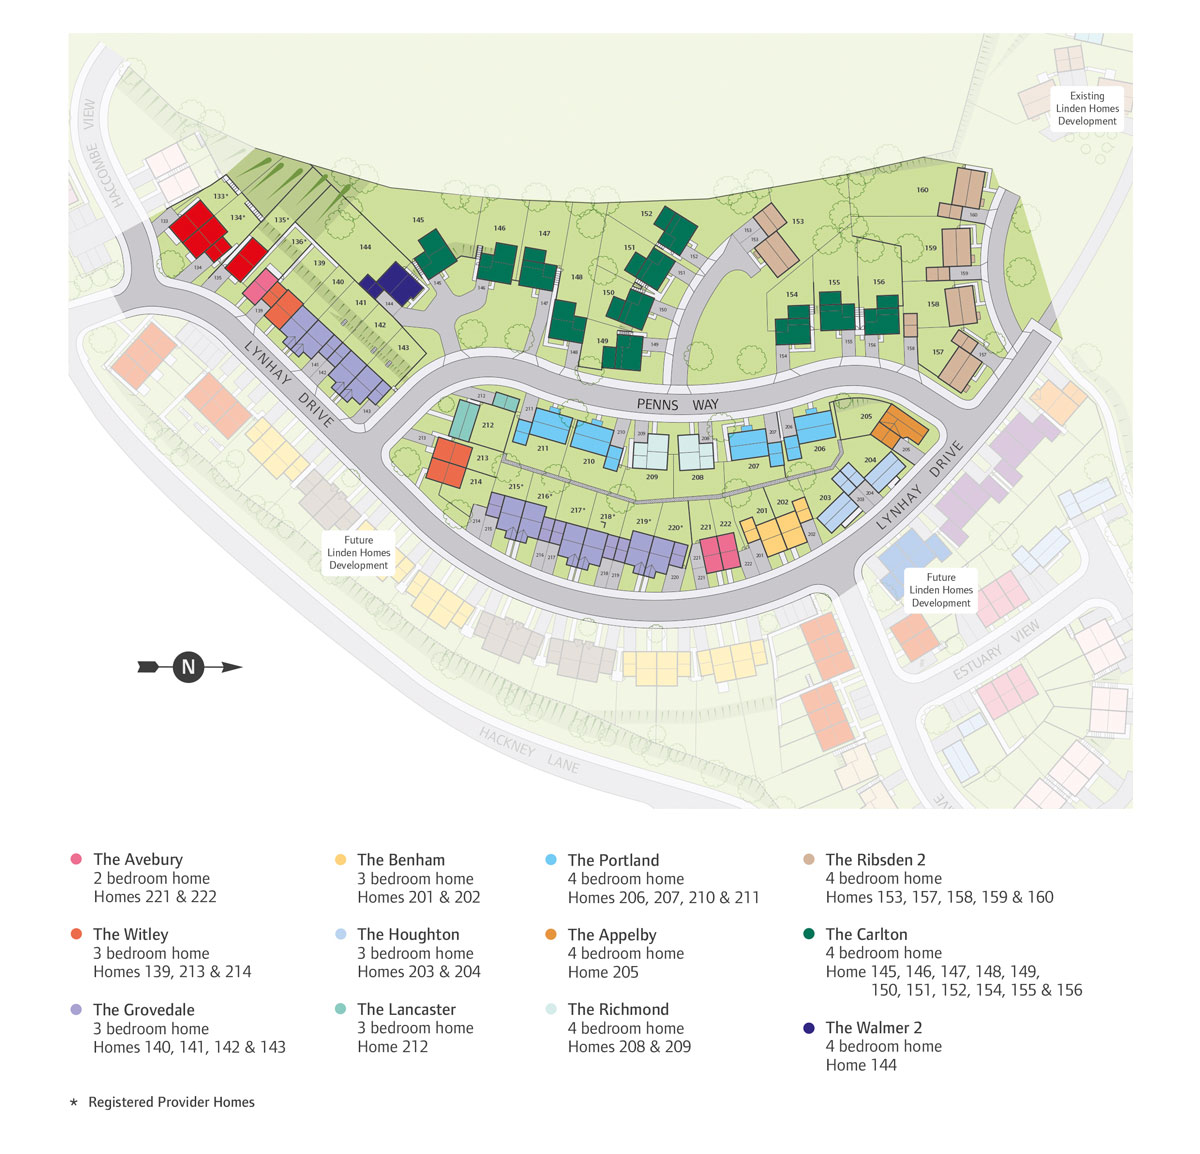 Kings Gate Newton Abbot New Homes Development - Site Layout